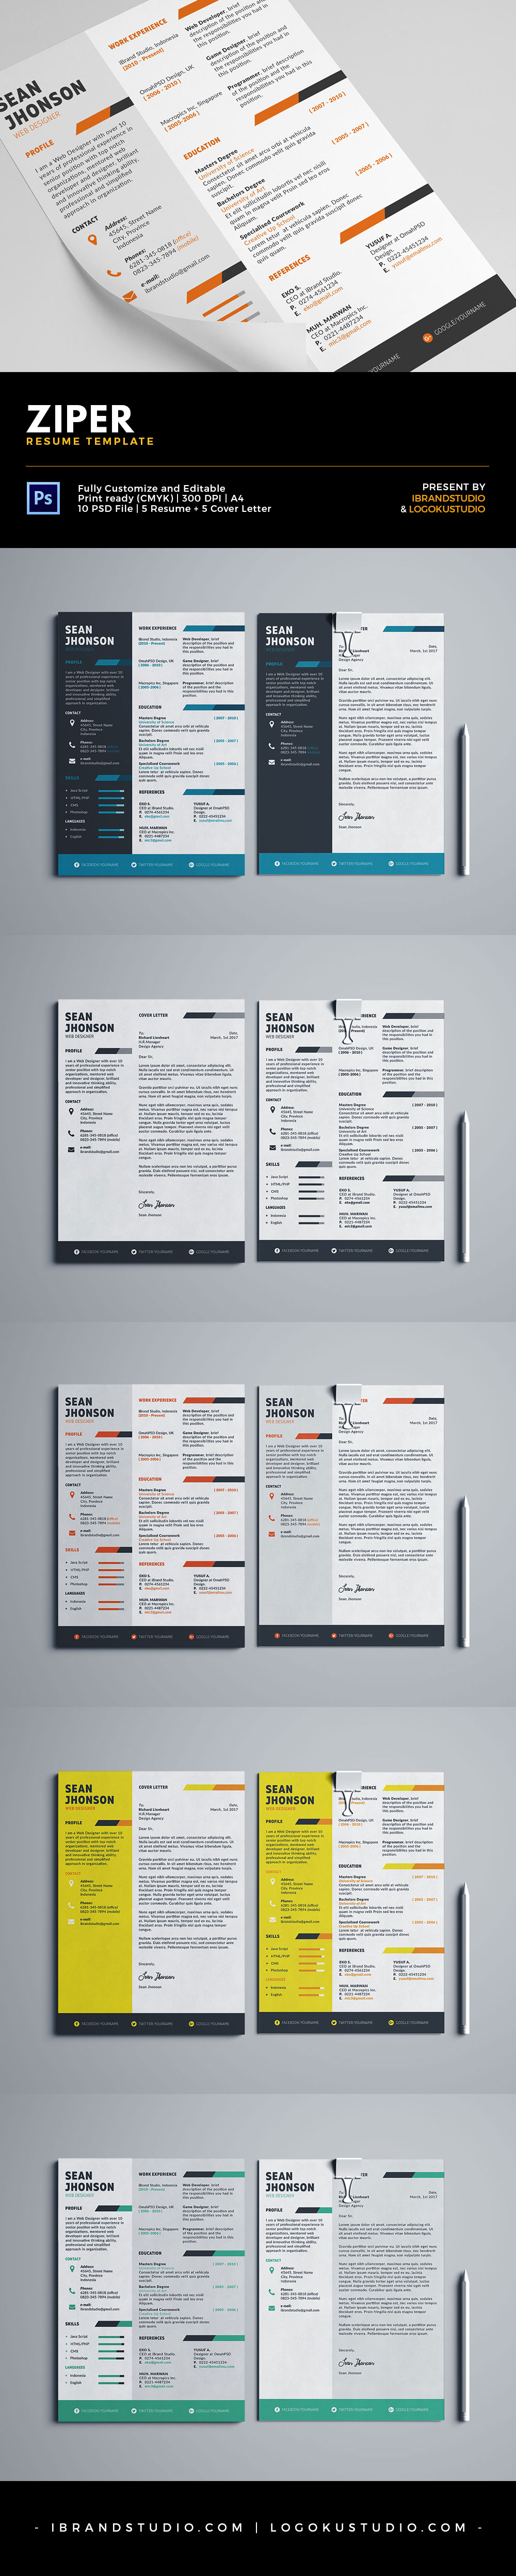 Free Ziper Resume Template and Cover Letter (PSD)